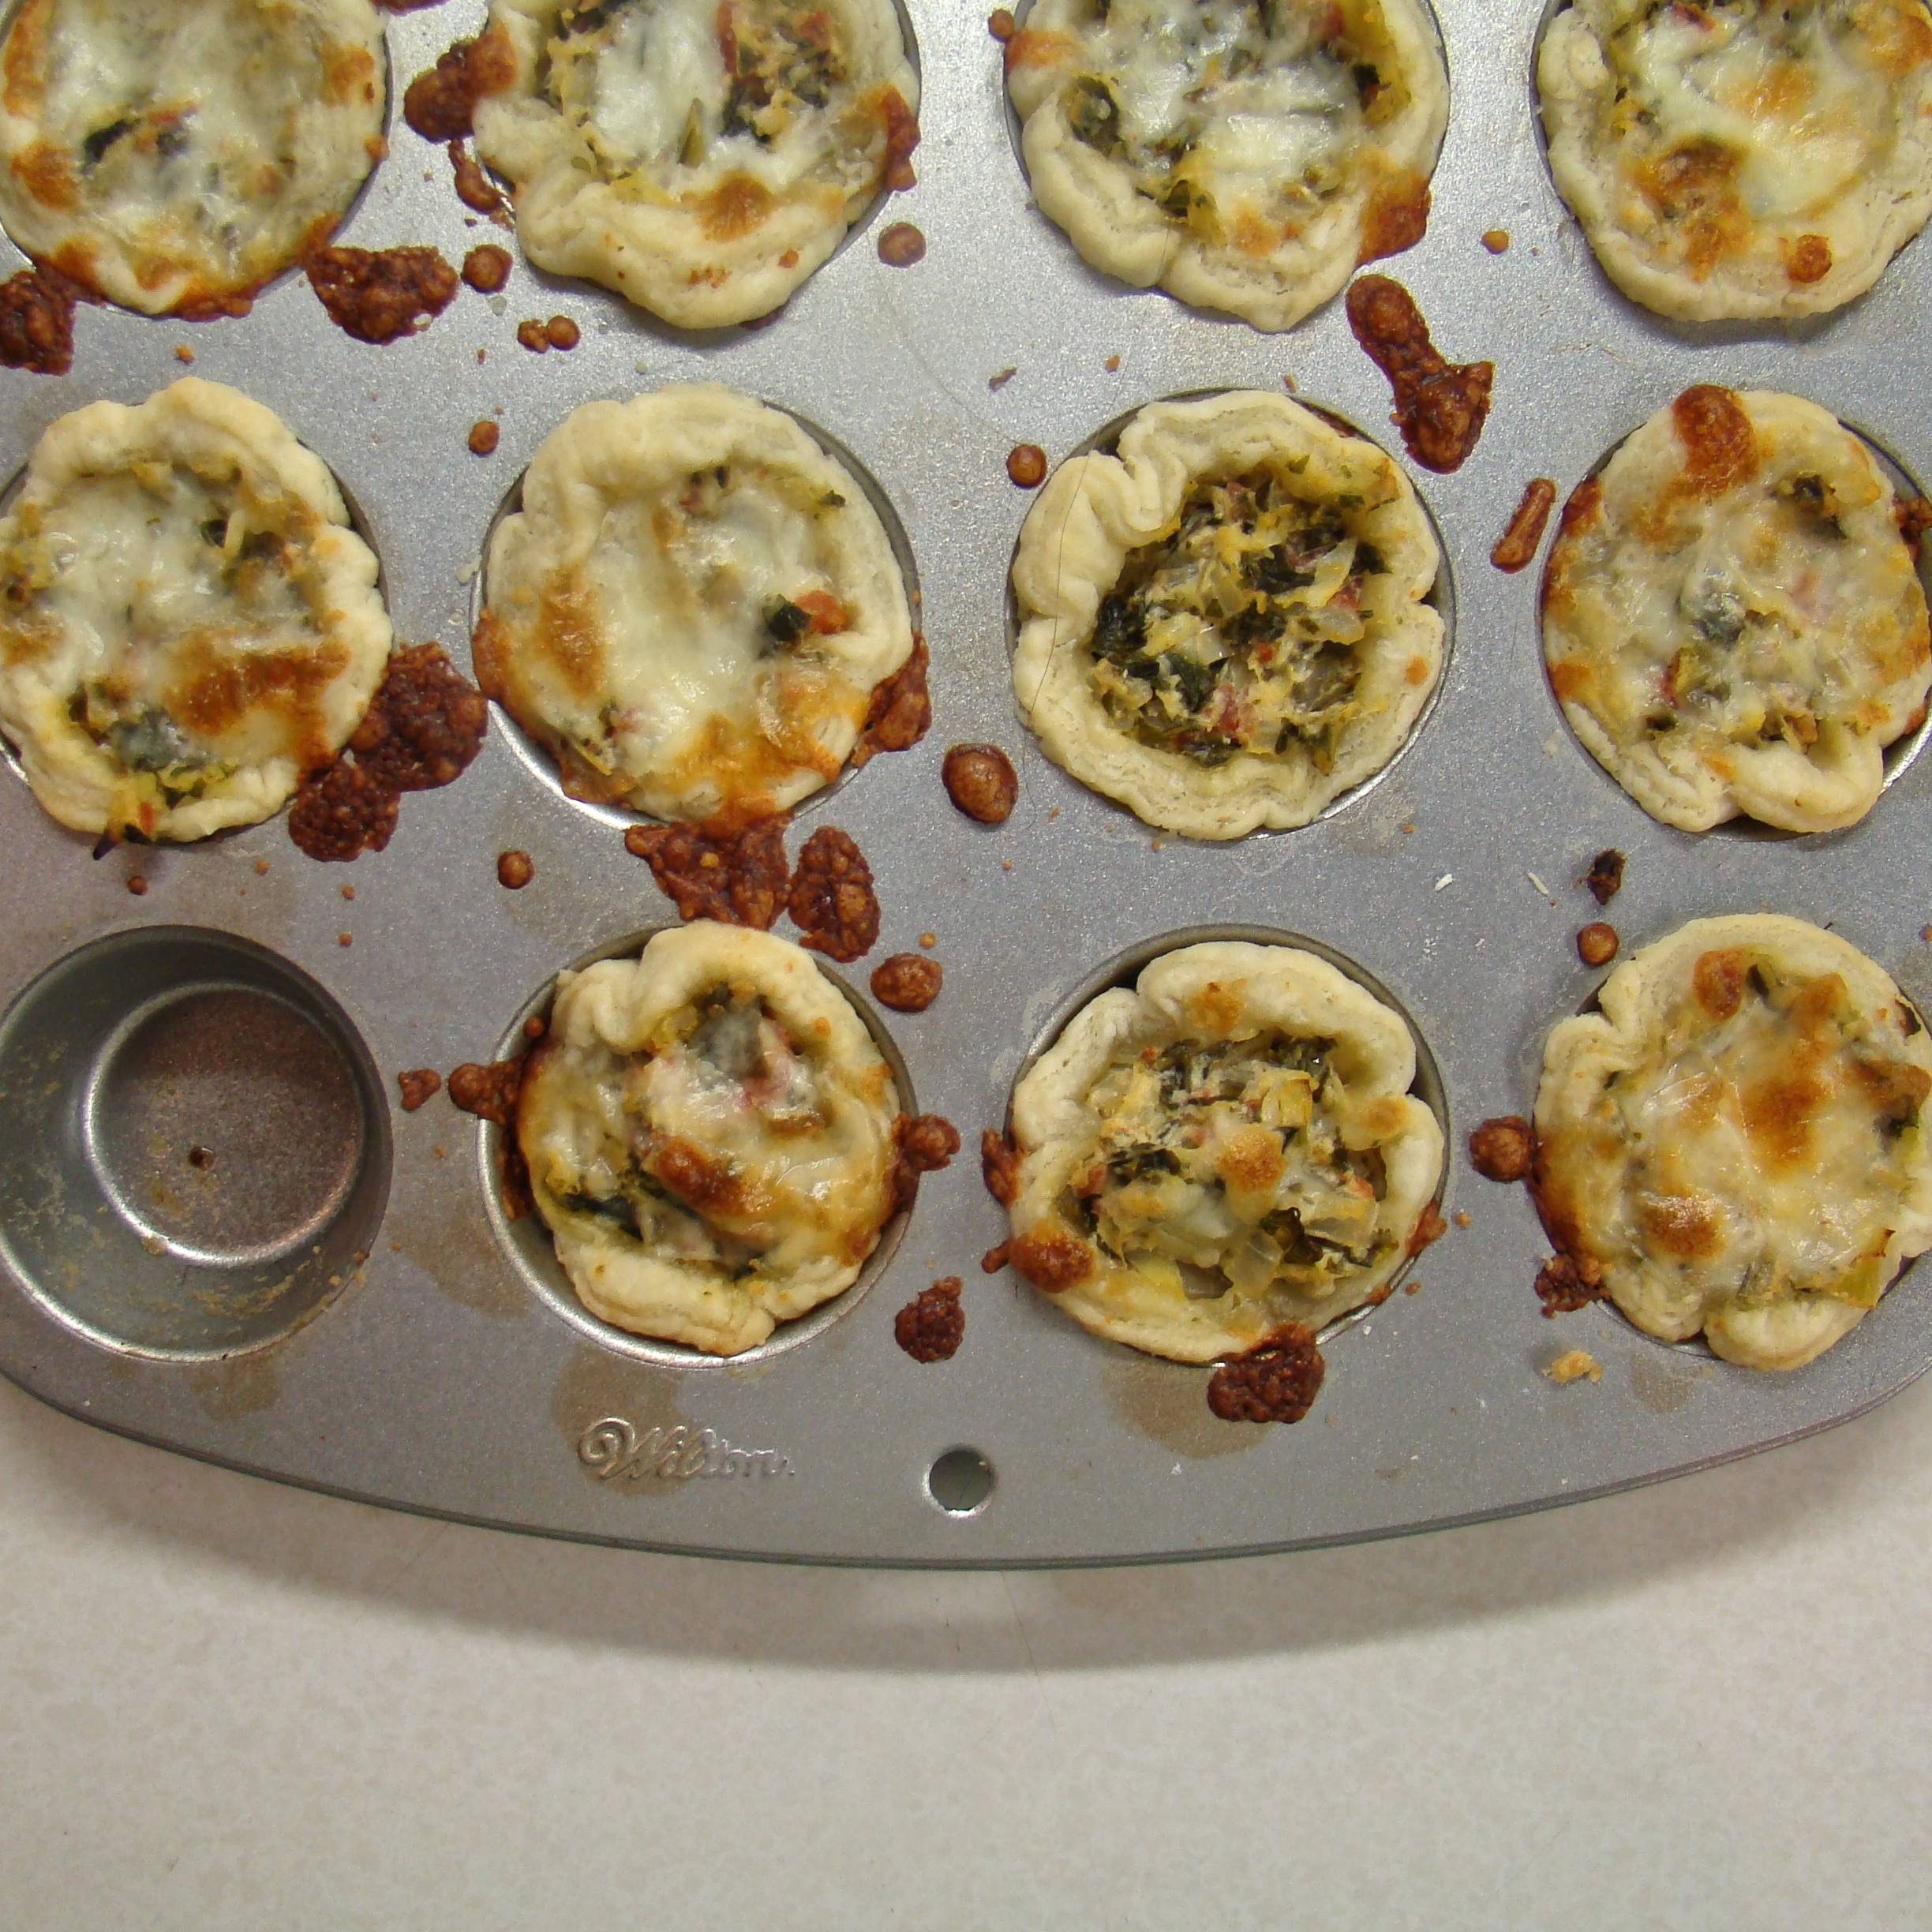 Caramelized Onion, Kale, and Artichoke Tartlets